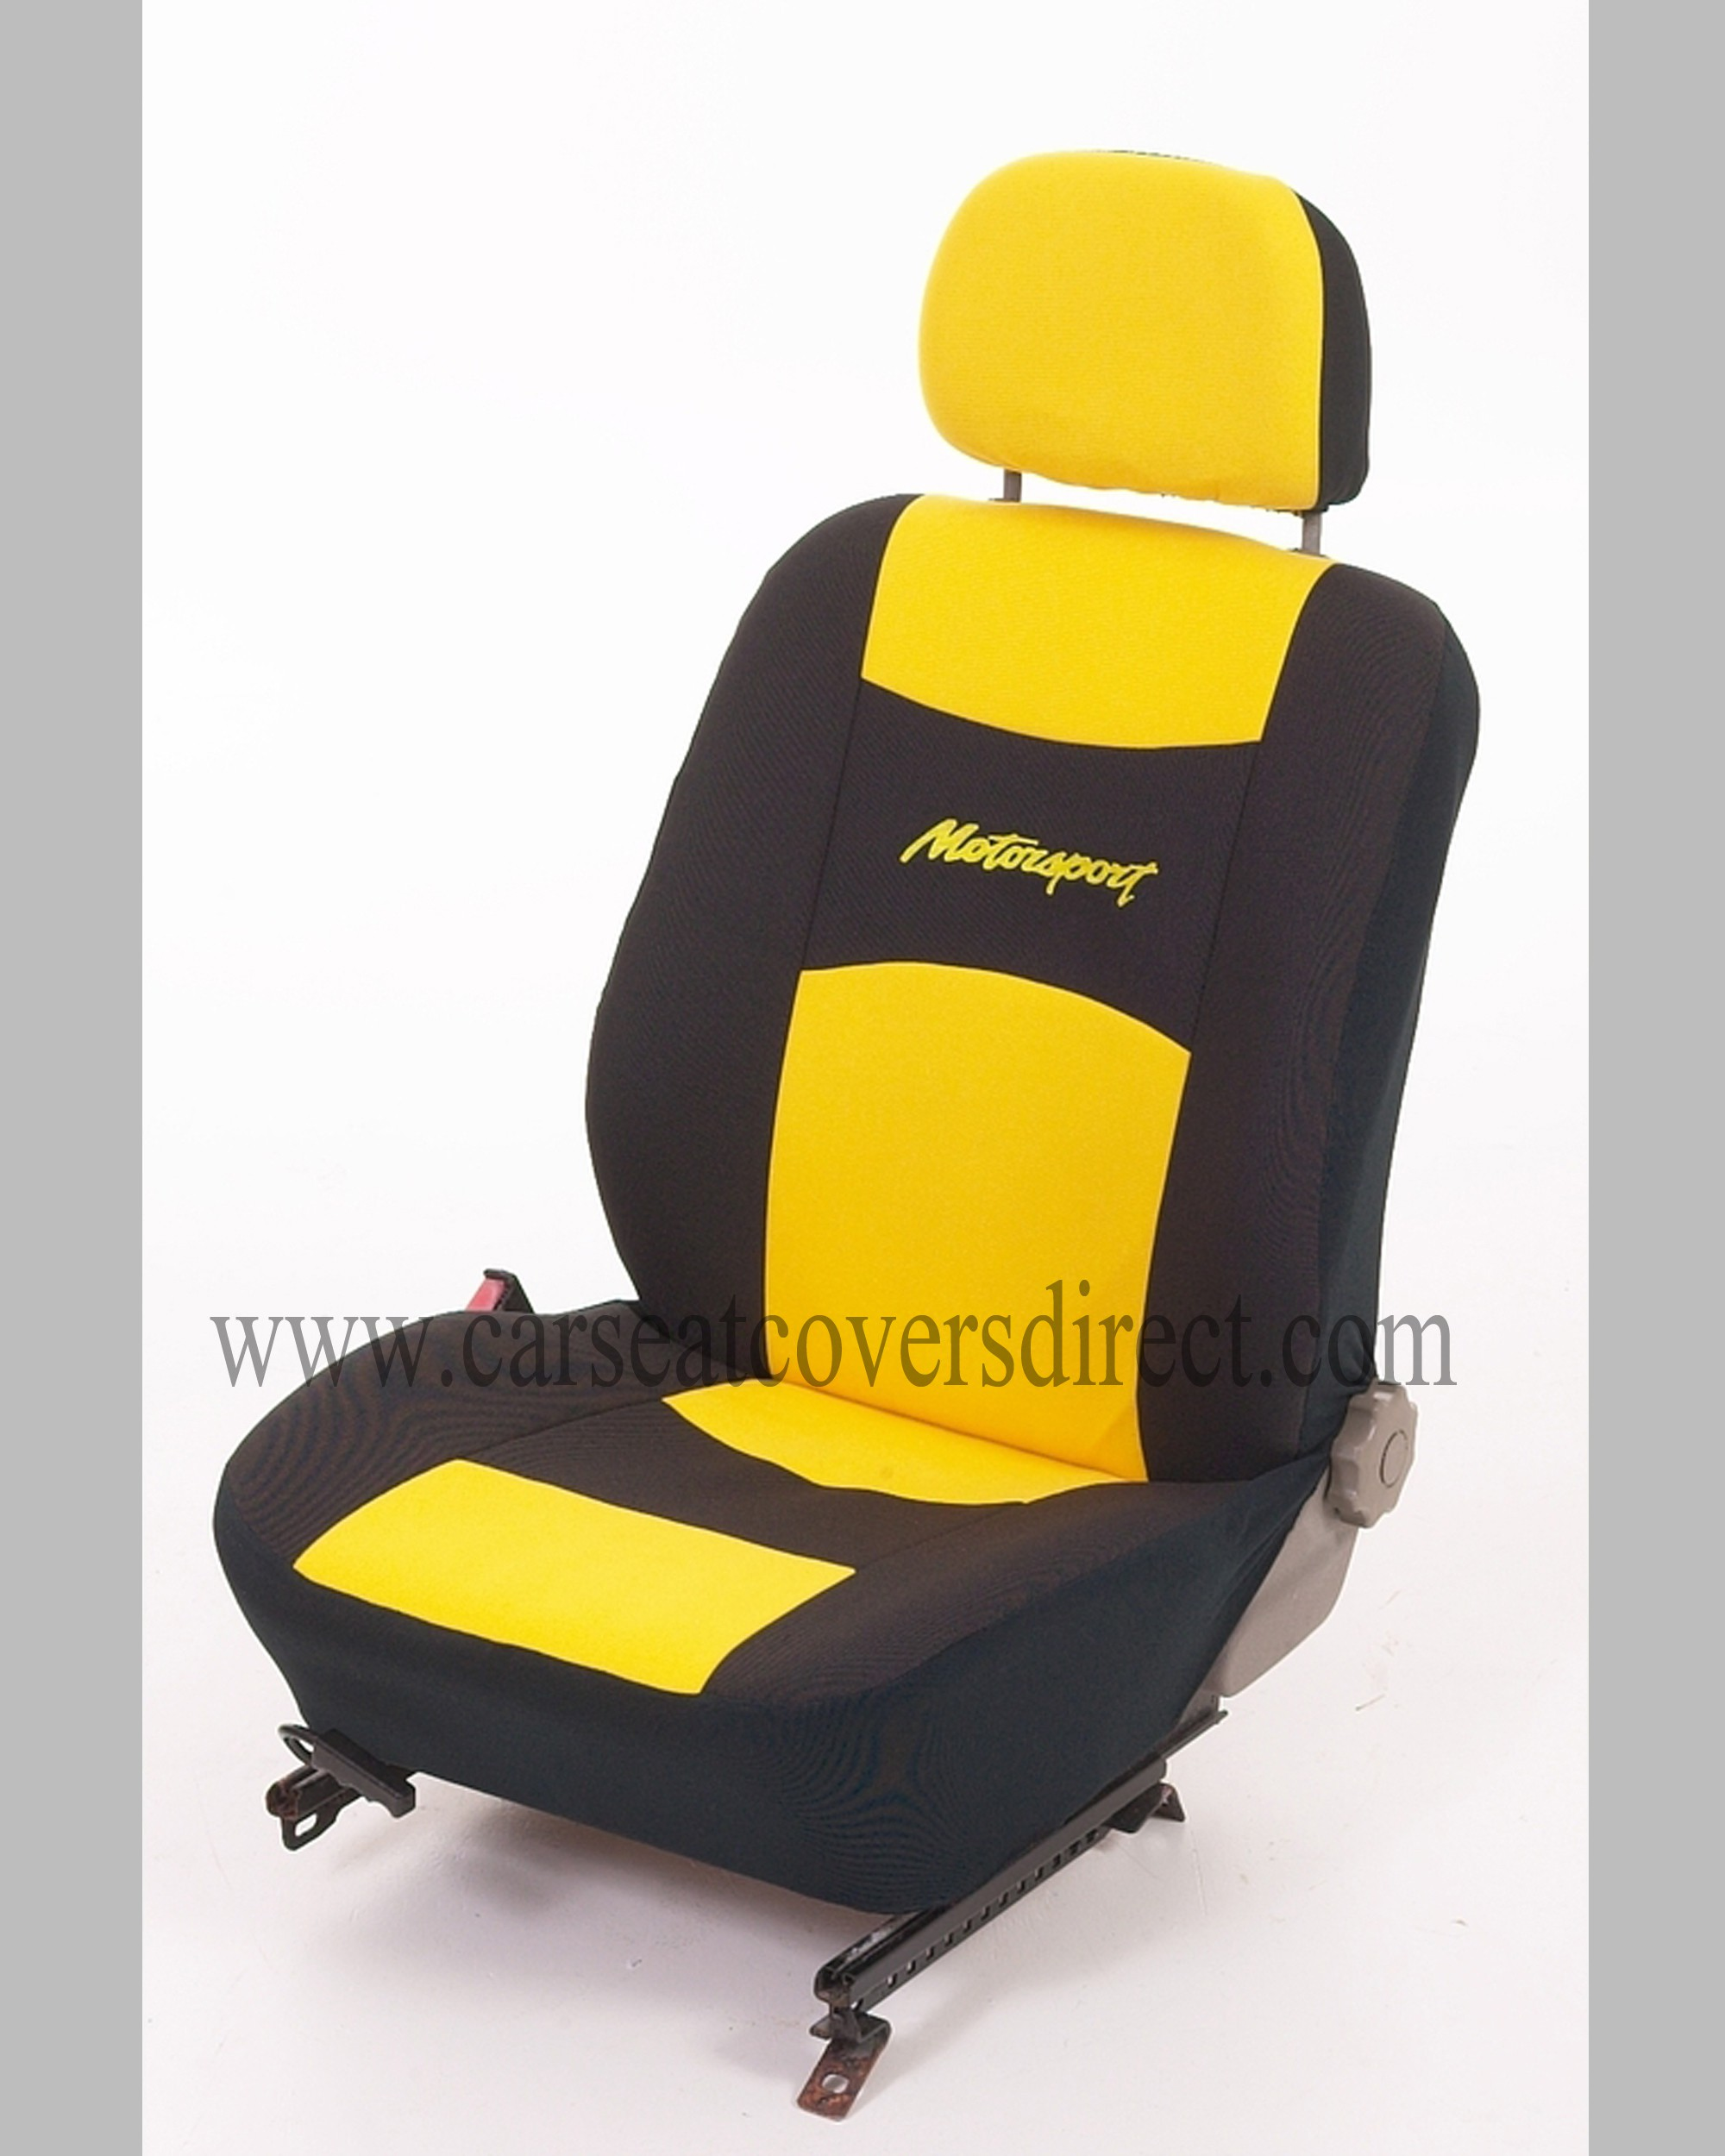 Motorsport UNIVERSAL Seat Covers (yellow)